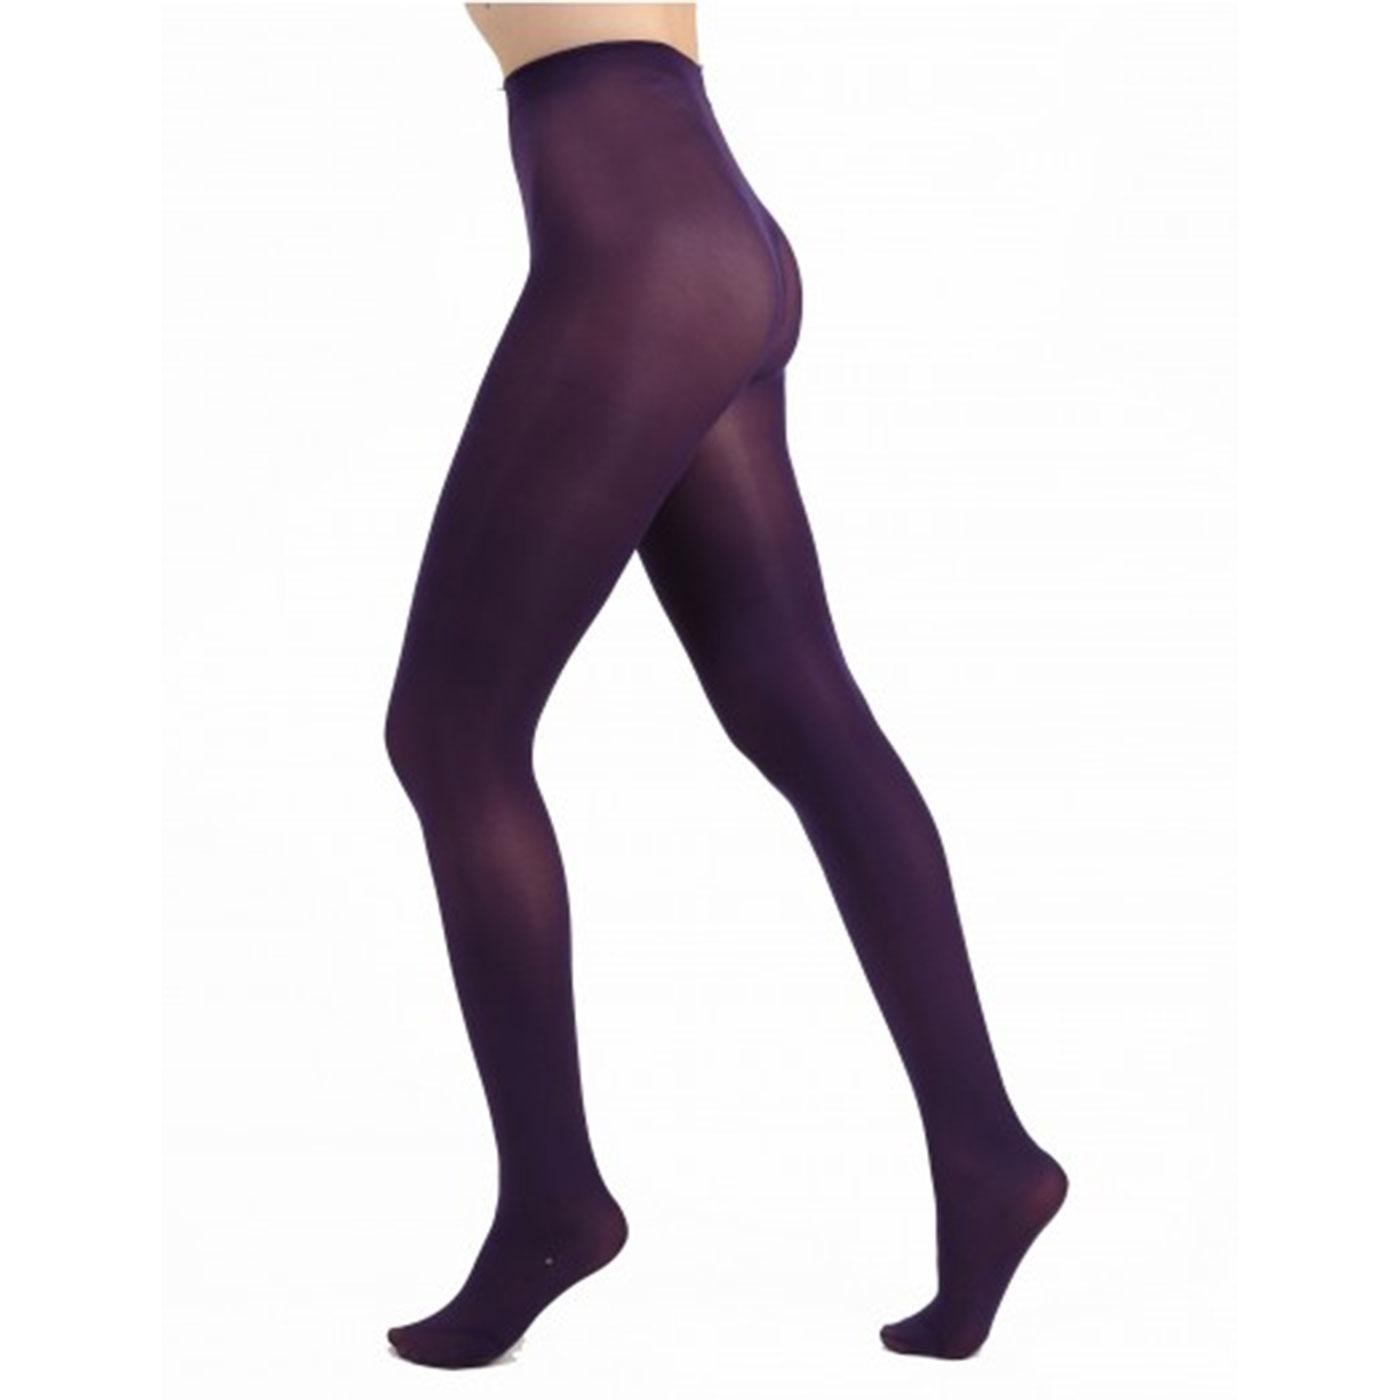 + PAMELA MANN 50 Denier Opaque Tights in Purple